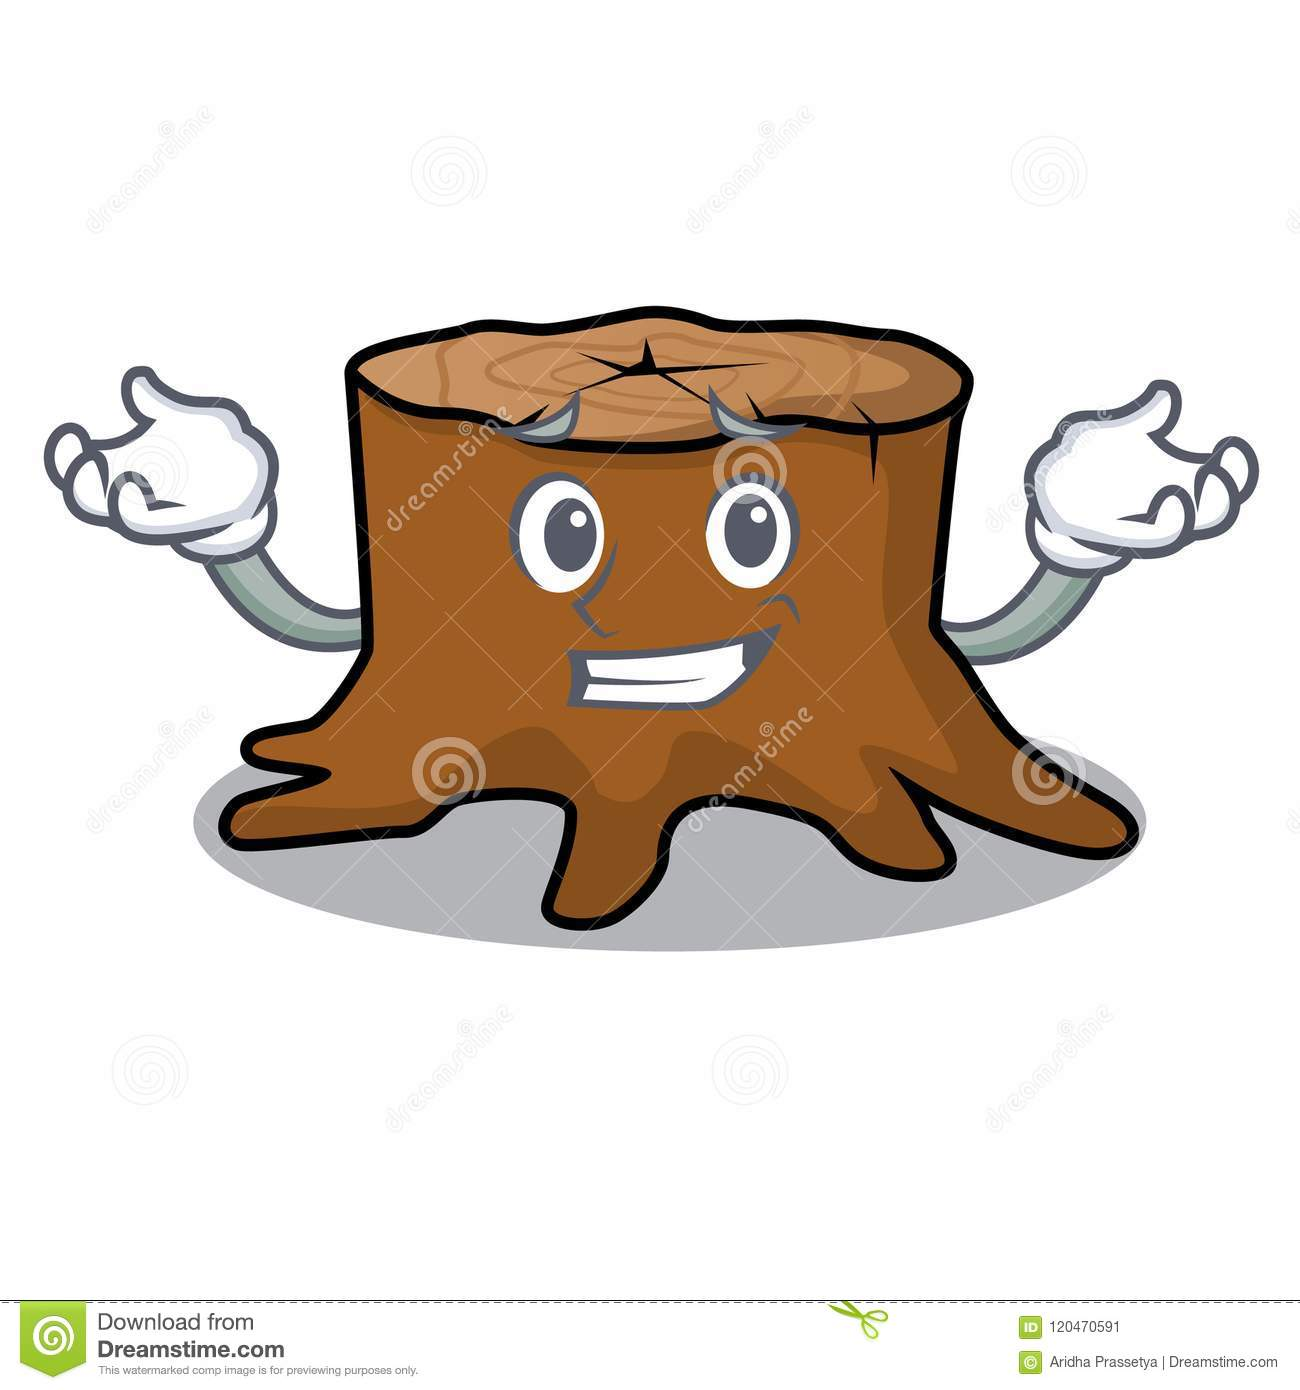 Grinning Tree Stump Character Cartoon Stock Vector Illustration Of Laugh Joyful 120470591 Cartoon tree stump 3d model available on turbo squid, the world's leading provider of digital 3d models for visualization, films, television, and games. https www dreamstime com grinning tree stump character cartoon vector illustration grinning tree stump character cartoon image120470591